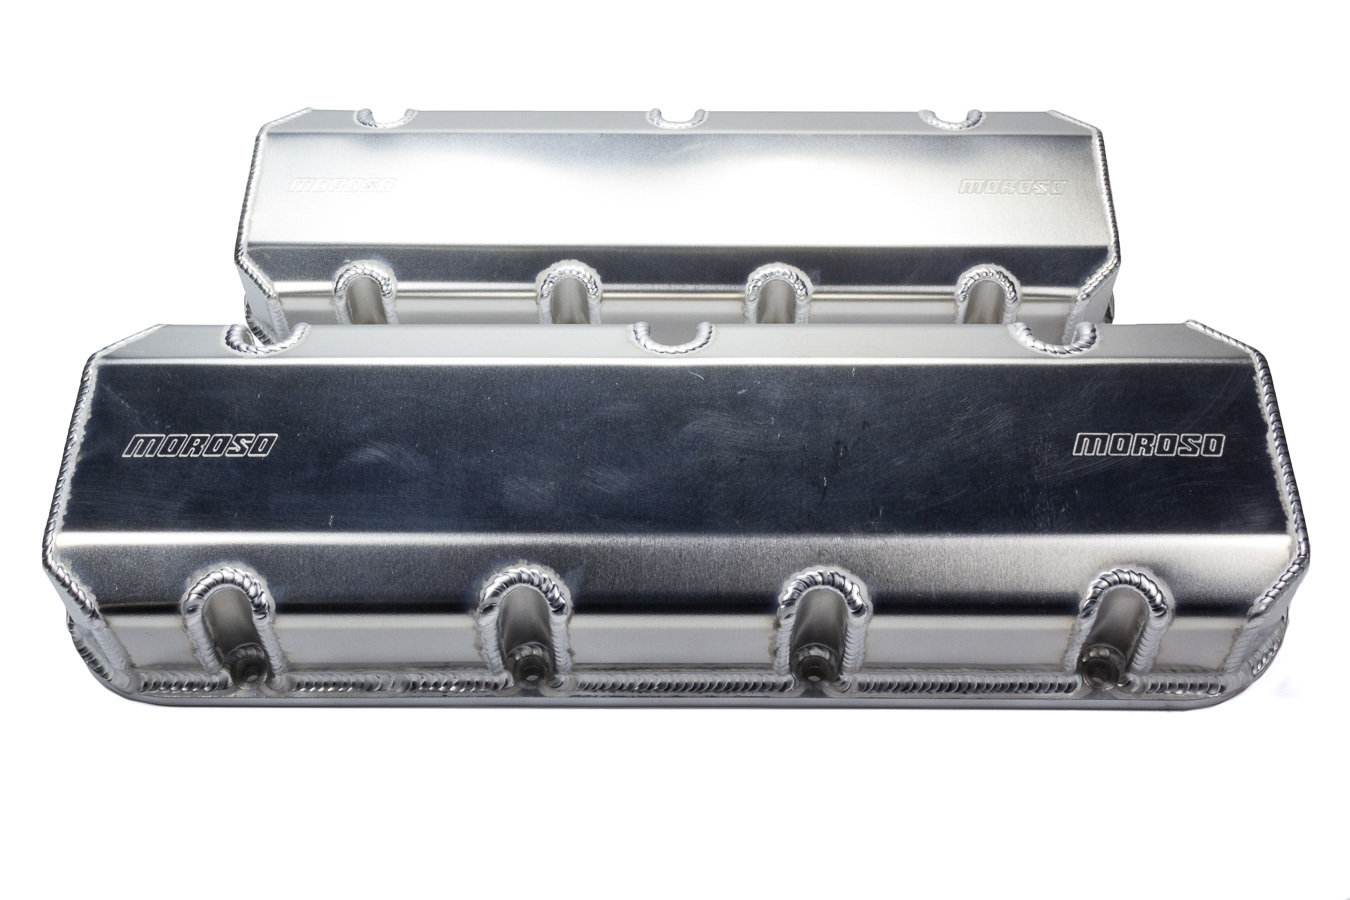 Moroso 68489 Valve Cover, Short, 3 in Height, Billet Rail, Moroso Logo, Fabricated Aluminum, Natural, Big Block Chevy, Pair